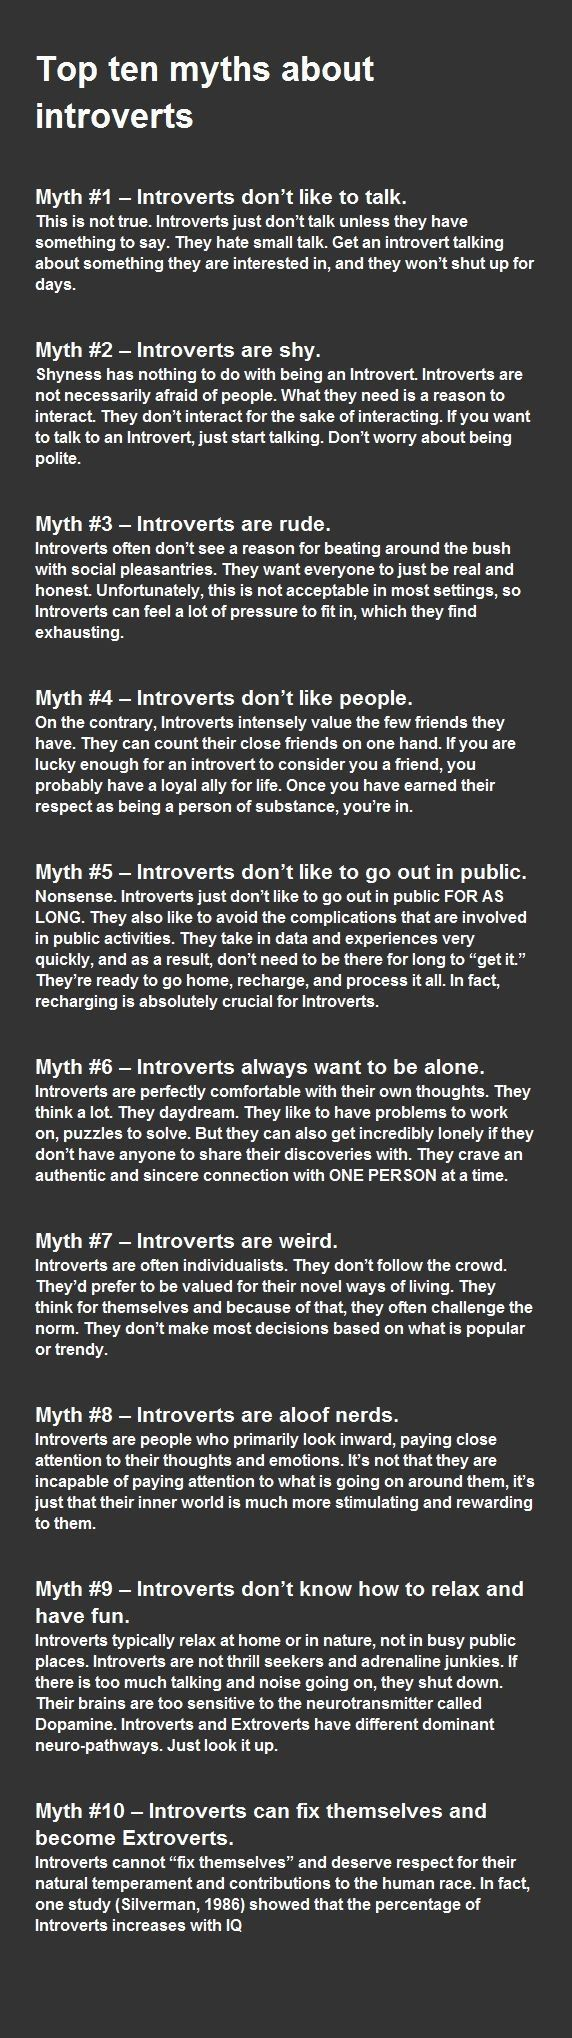 I am an introvert. And that's okay. I just wish people didn't try so hard to turn me into an extrovert sometimes.